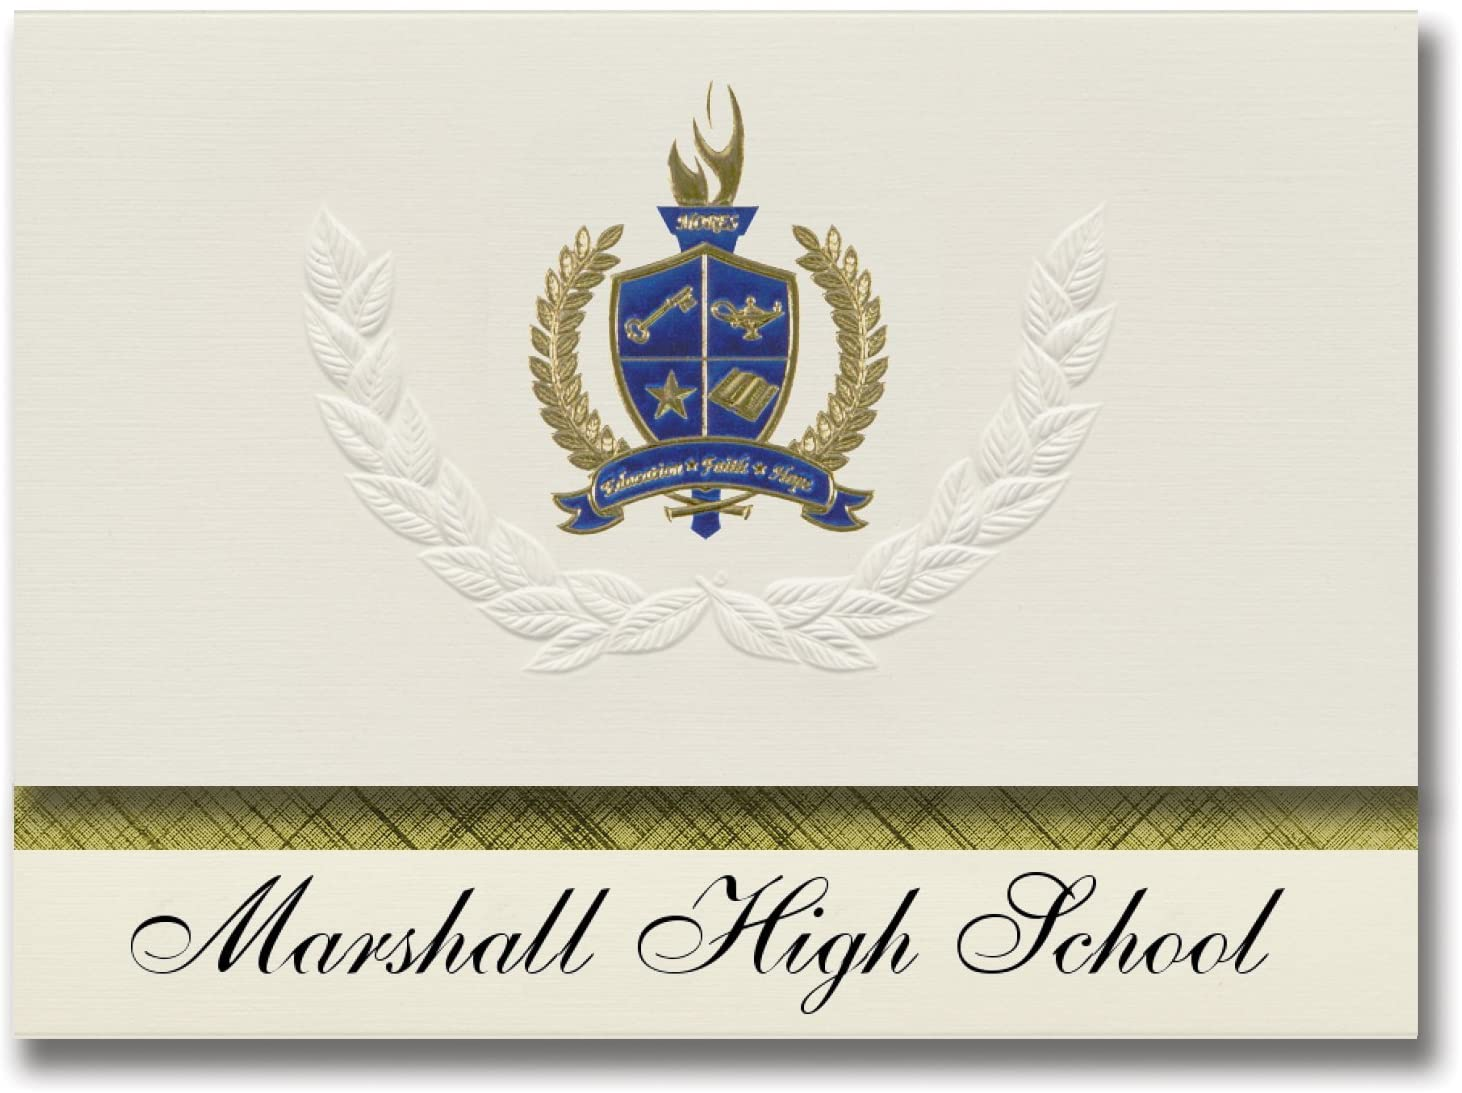 Signature Announcements Marshall High School (Marshall, TX) Graduation Announcements, Presidential style, Basic package of 25 with Gold & Blue Metallic Foil seal